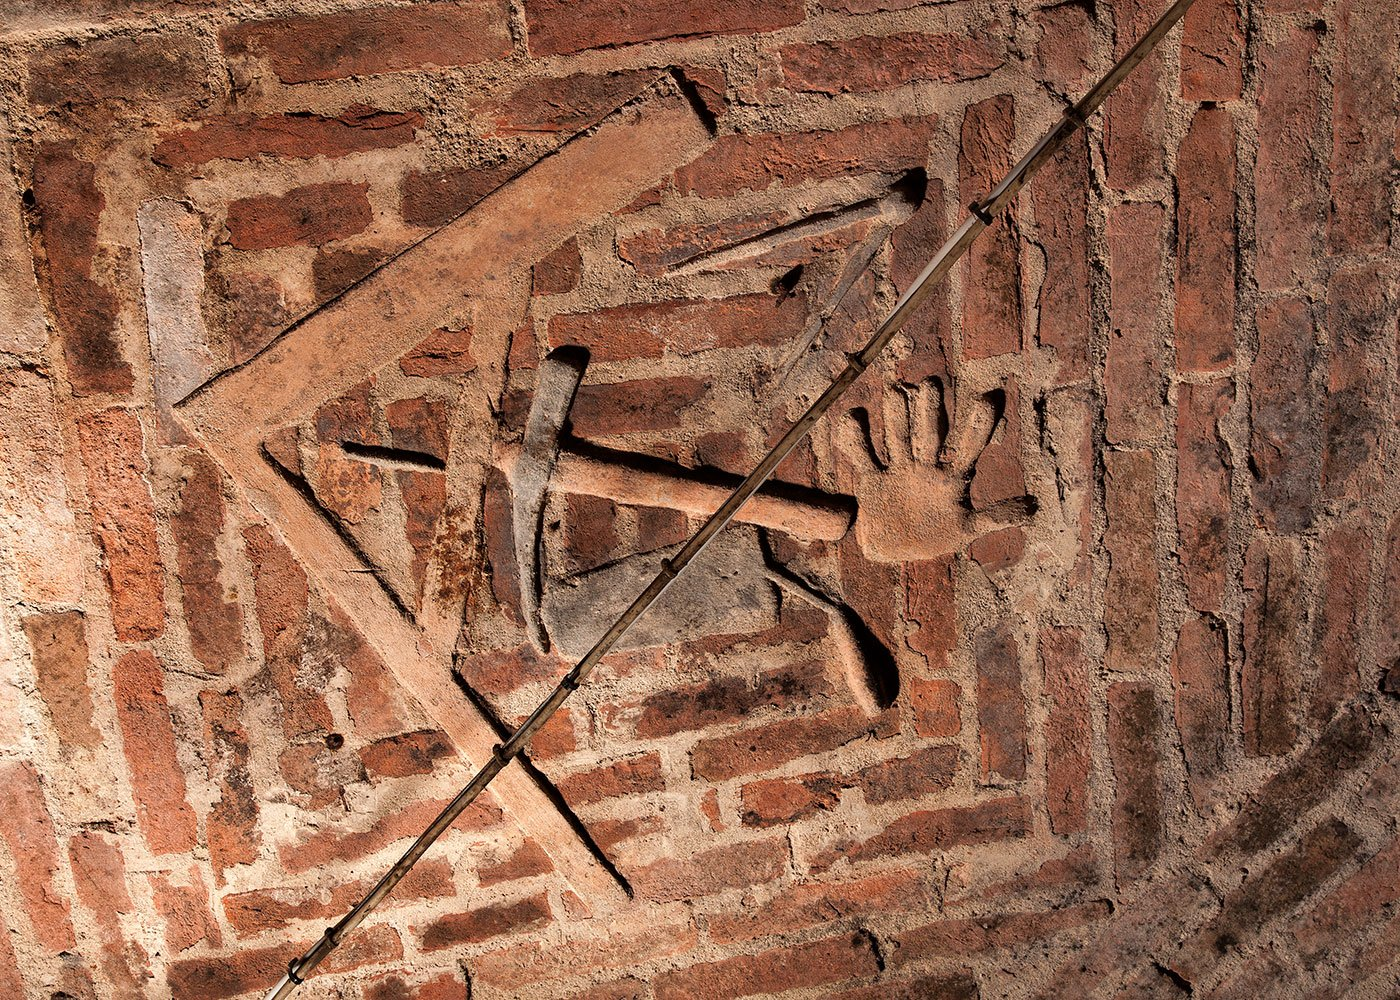 The antique symbols one can see on the walls of the cellar.